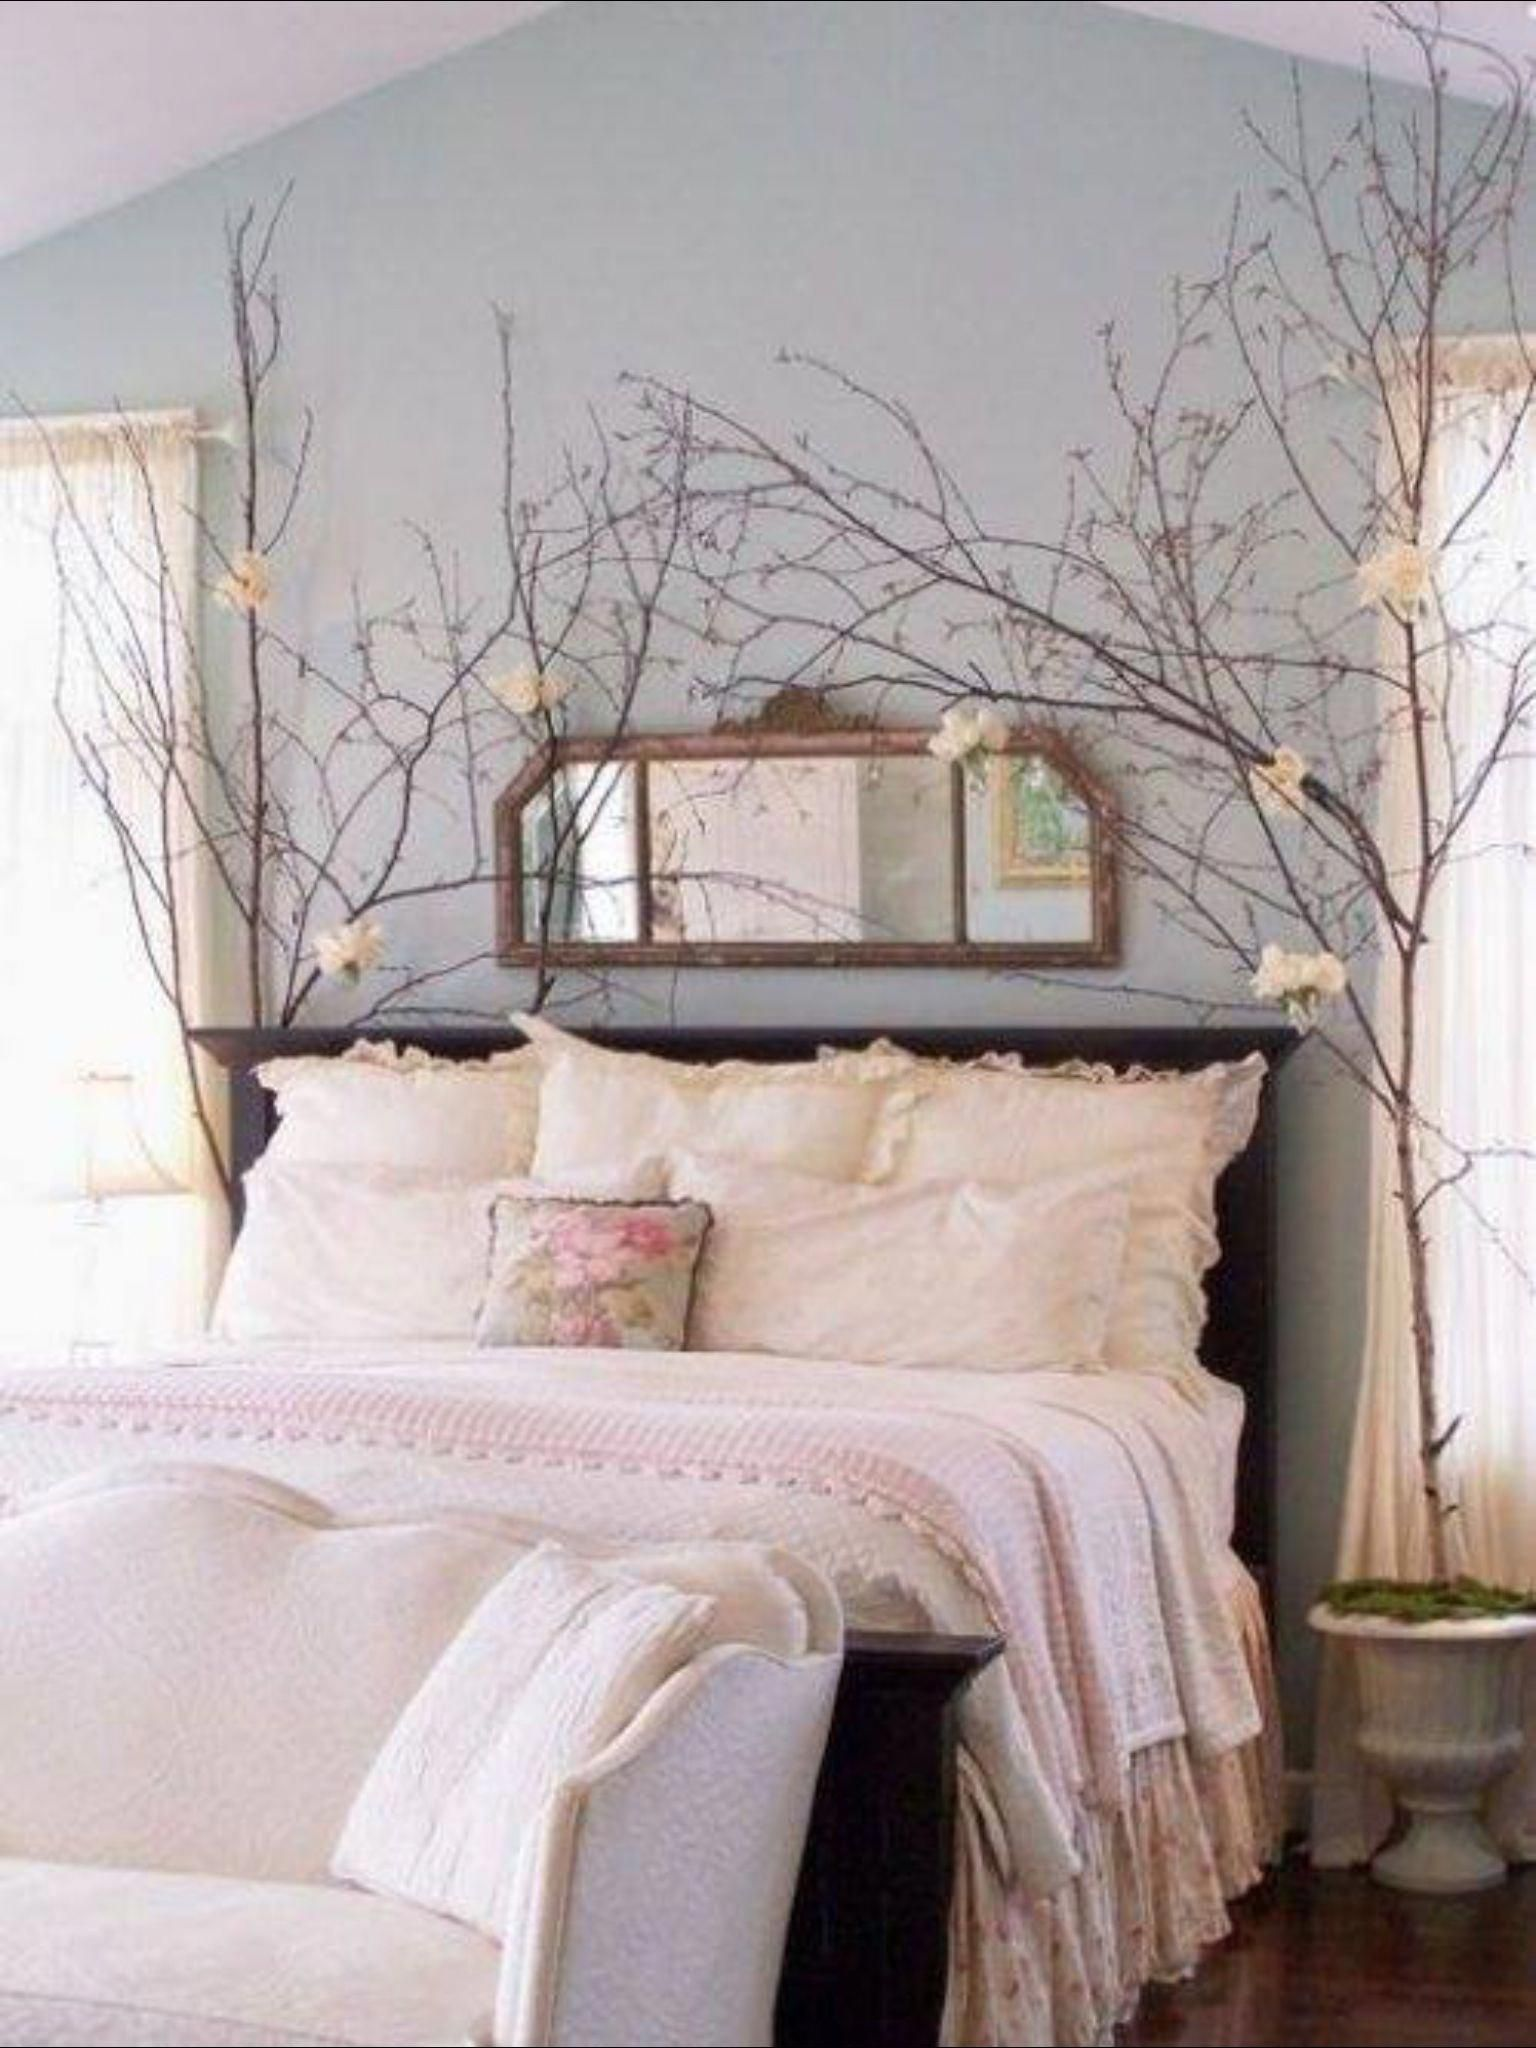 Teen girl bedrooms makeover decor ideas for a cozy and relaxing teen